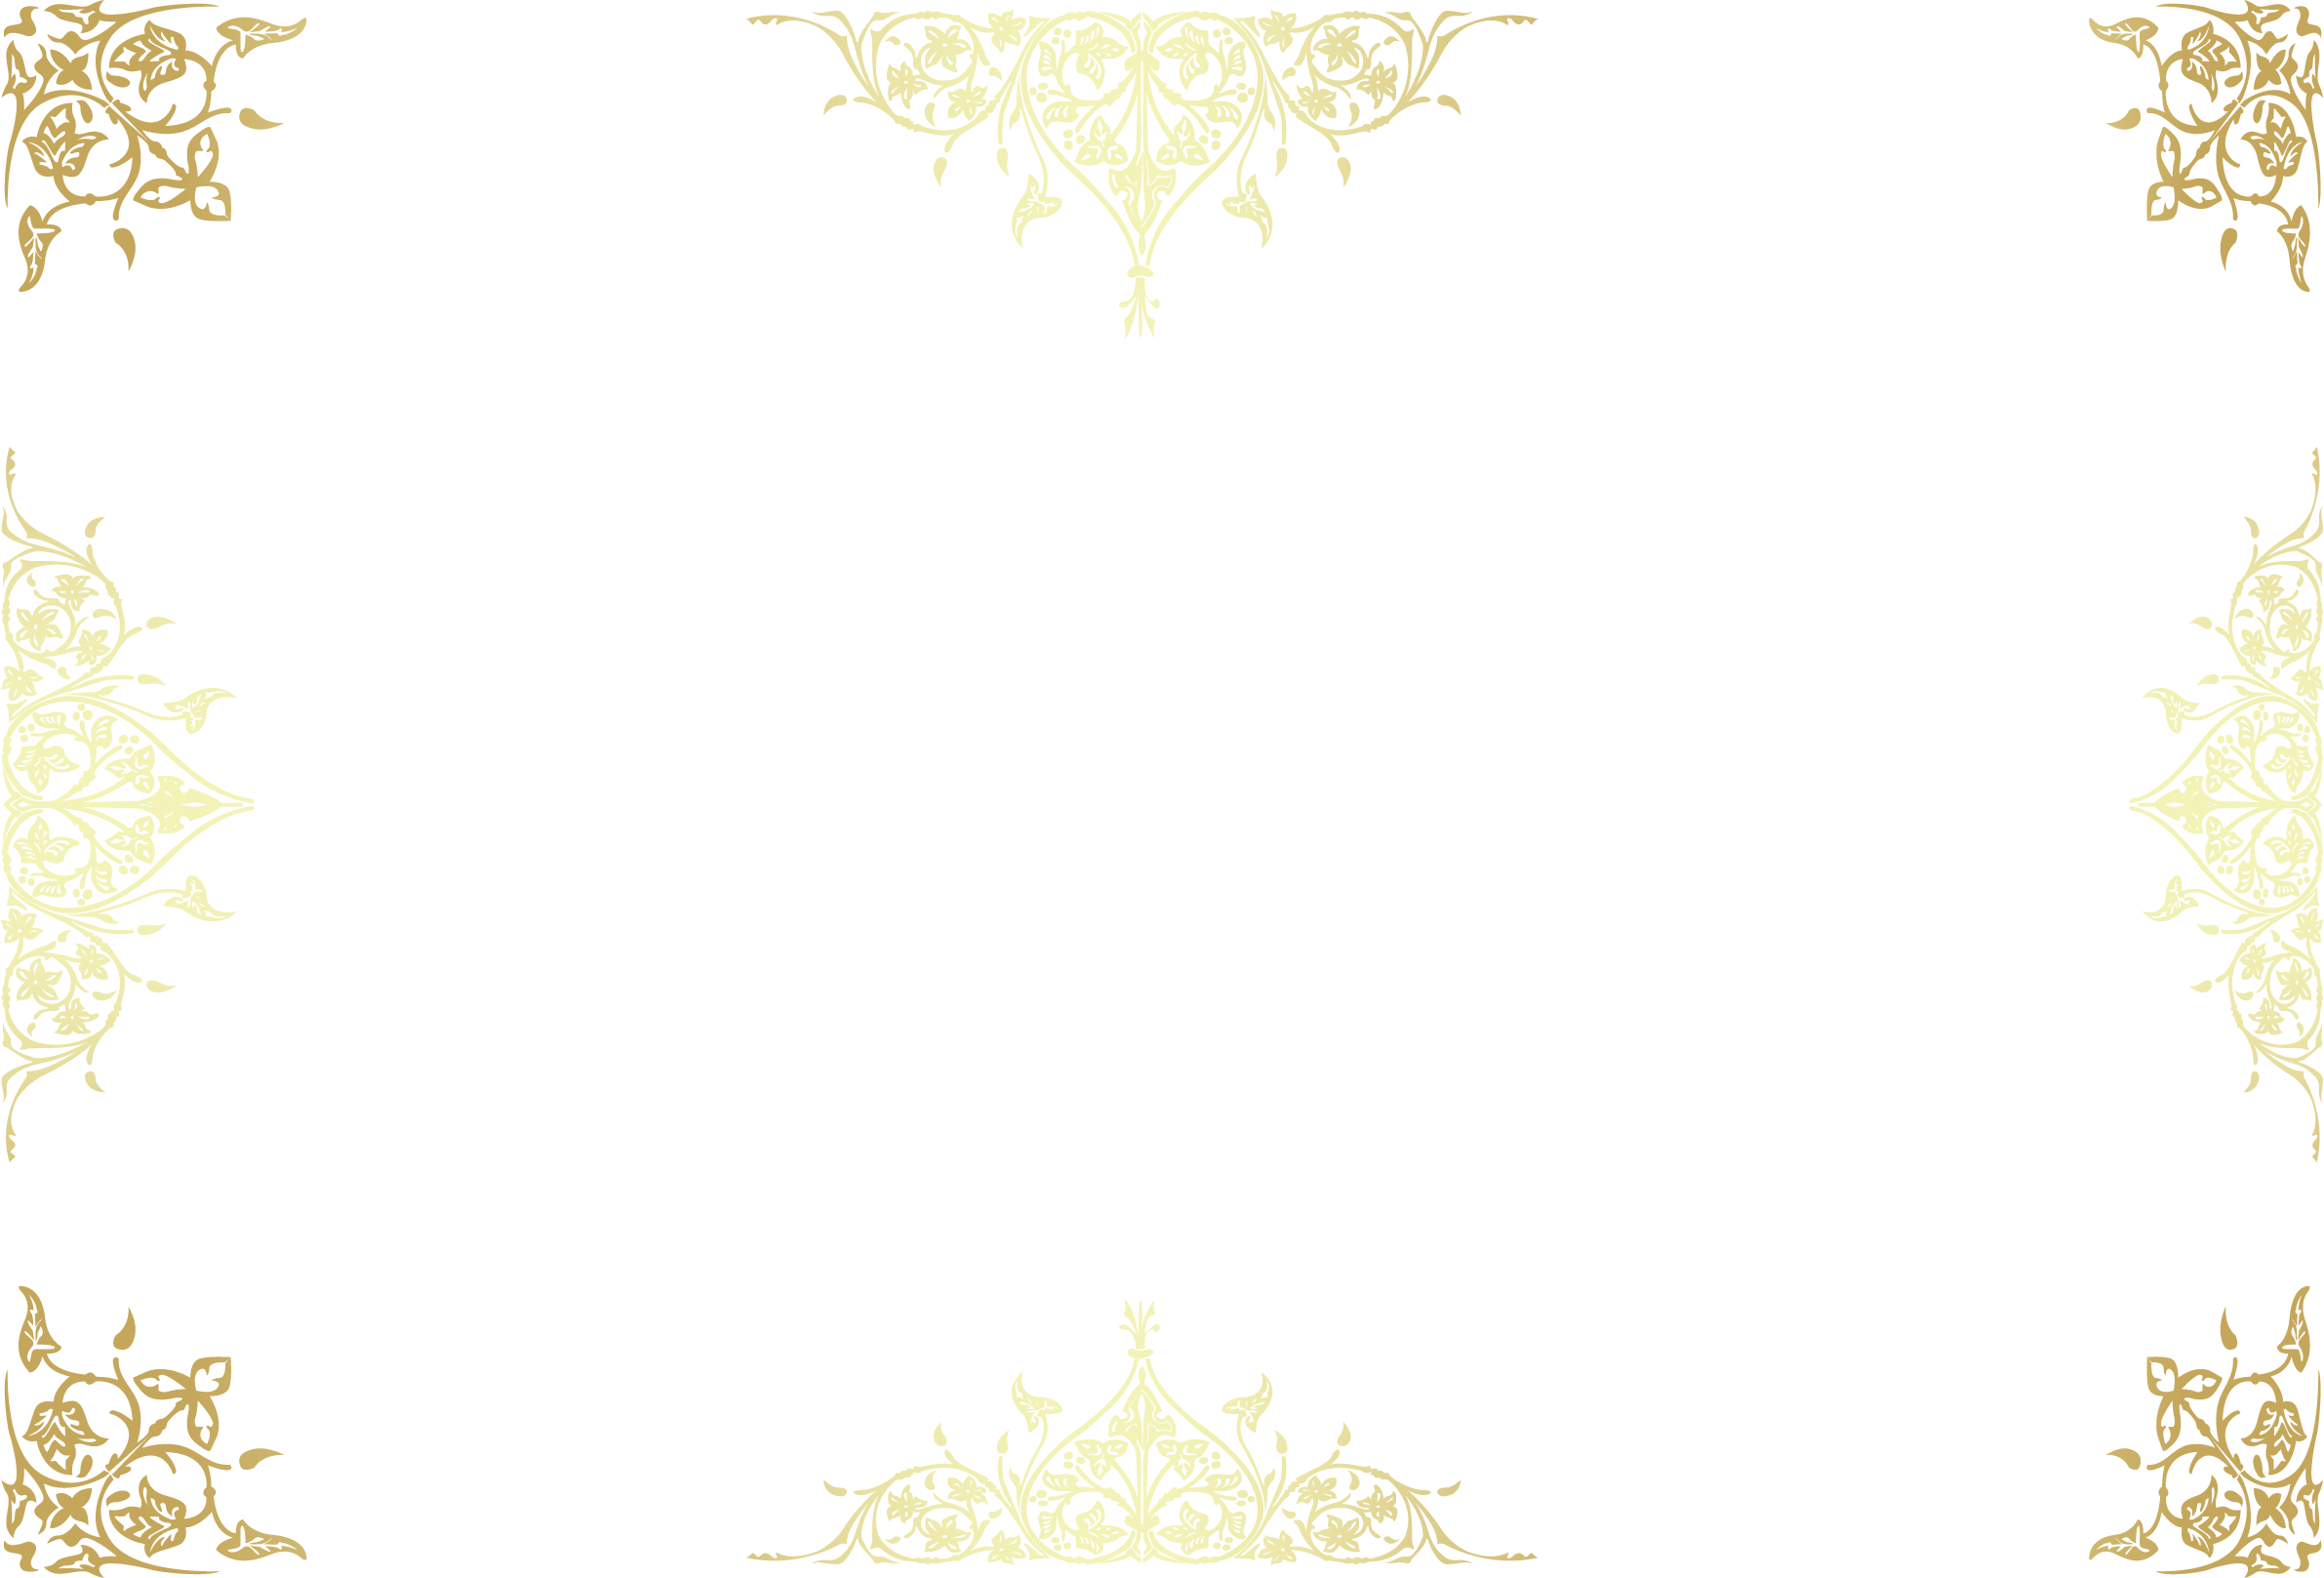 Clam vector golden. Floral deformation creative border